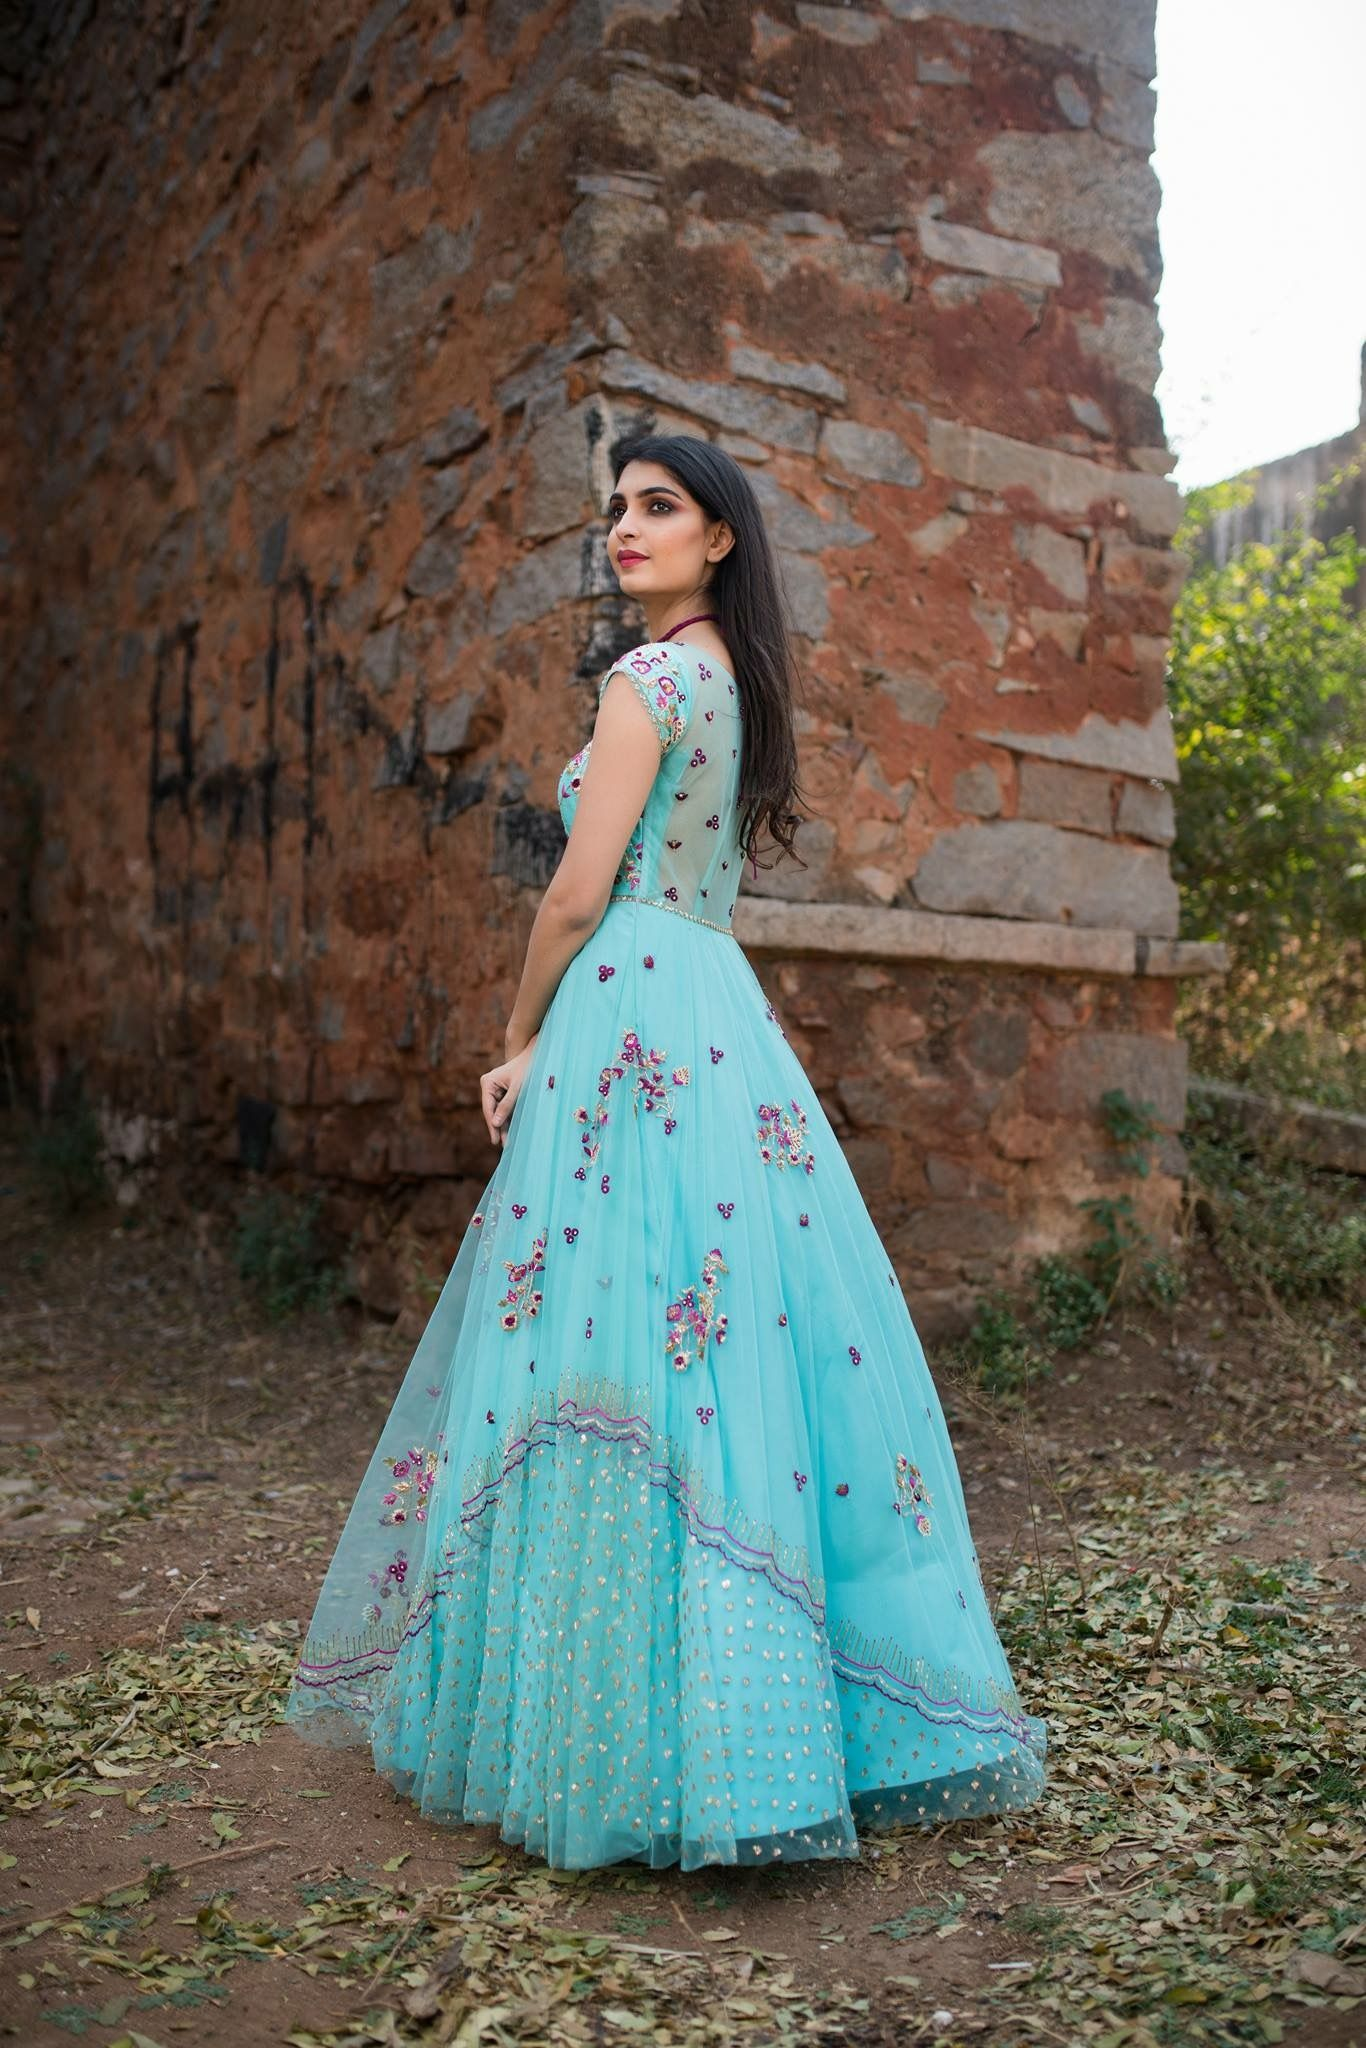 Pin by Ashhh.. on lehngas and gowns | Pinterest | Mint dress, Gowns ...